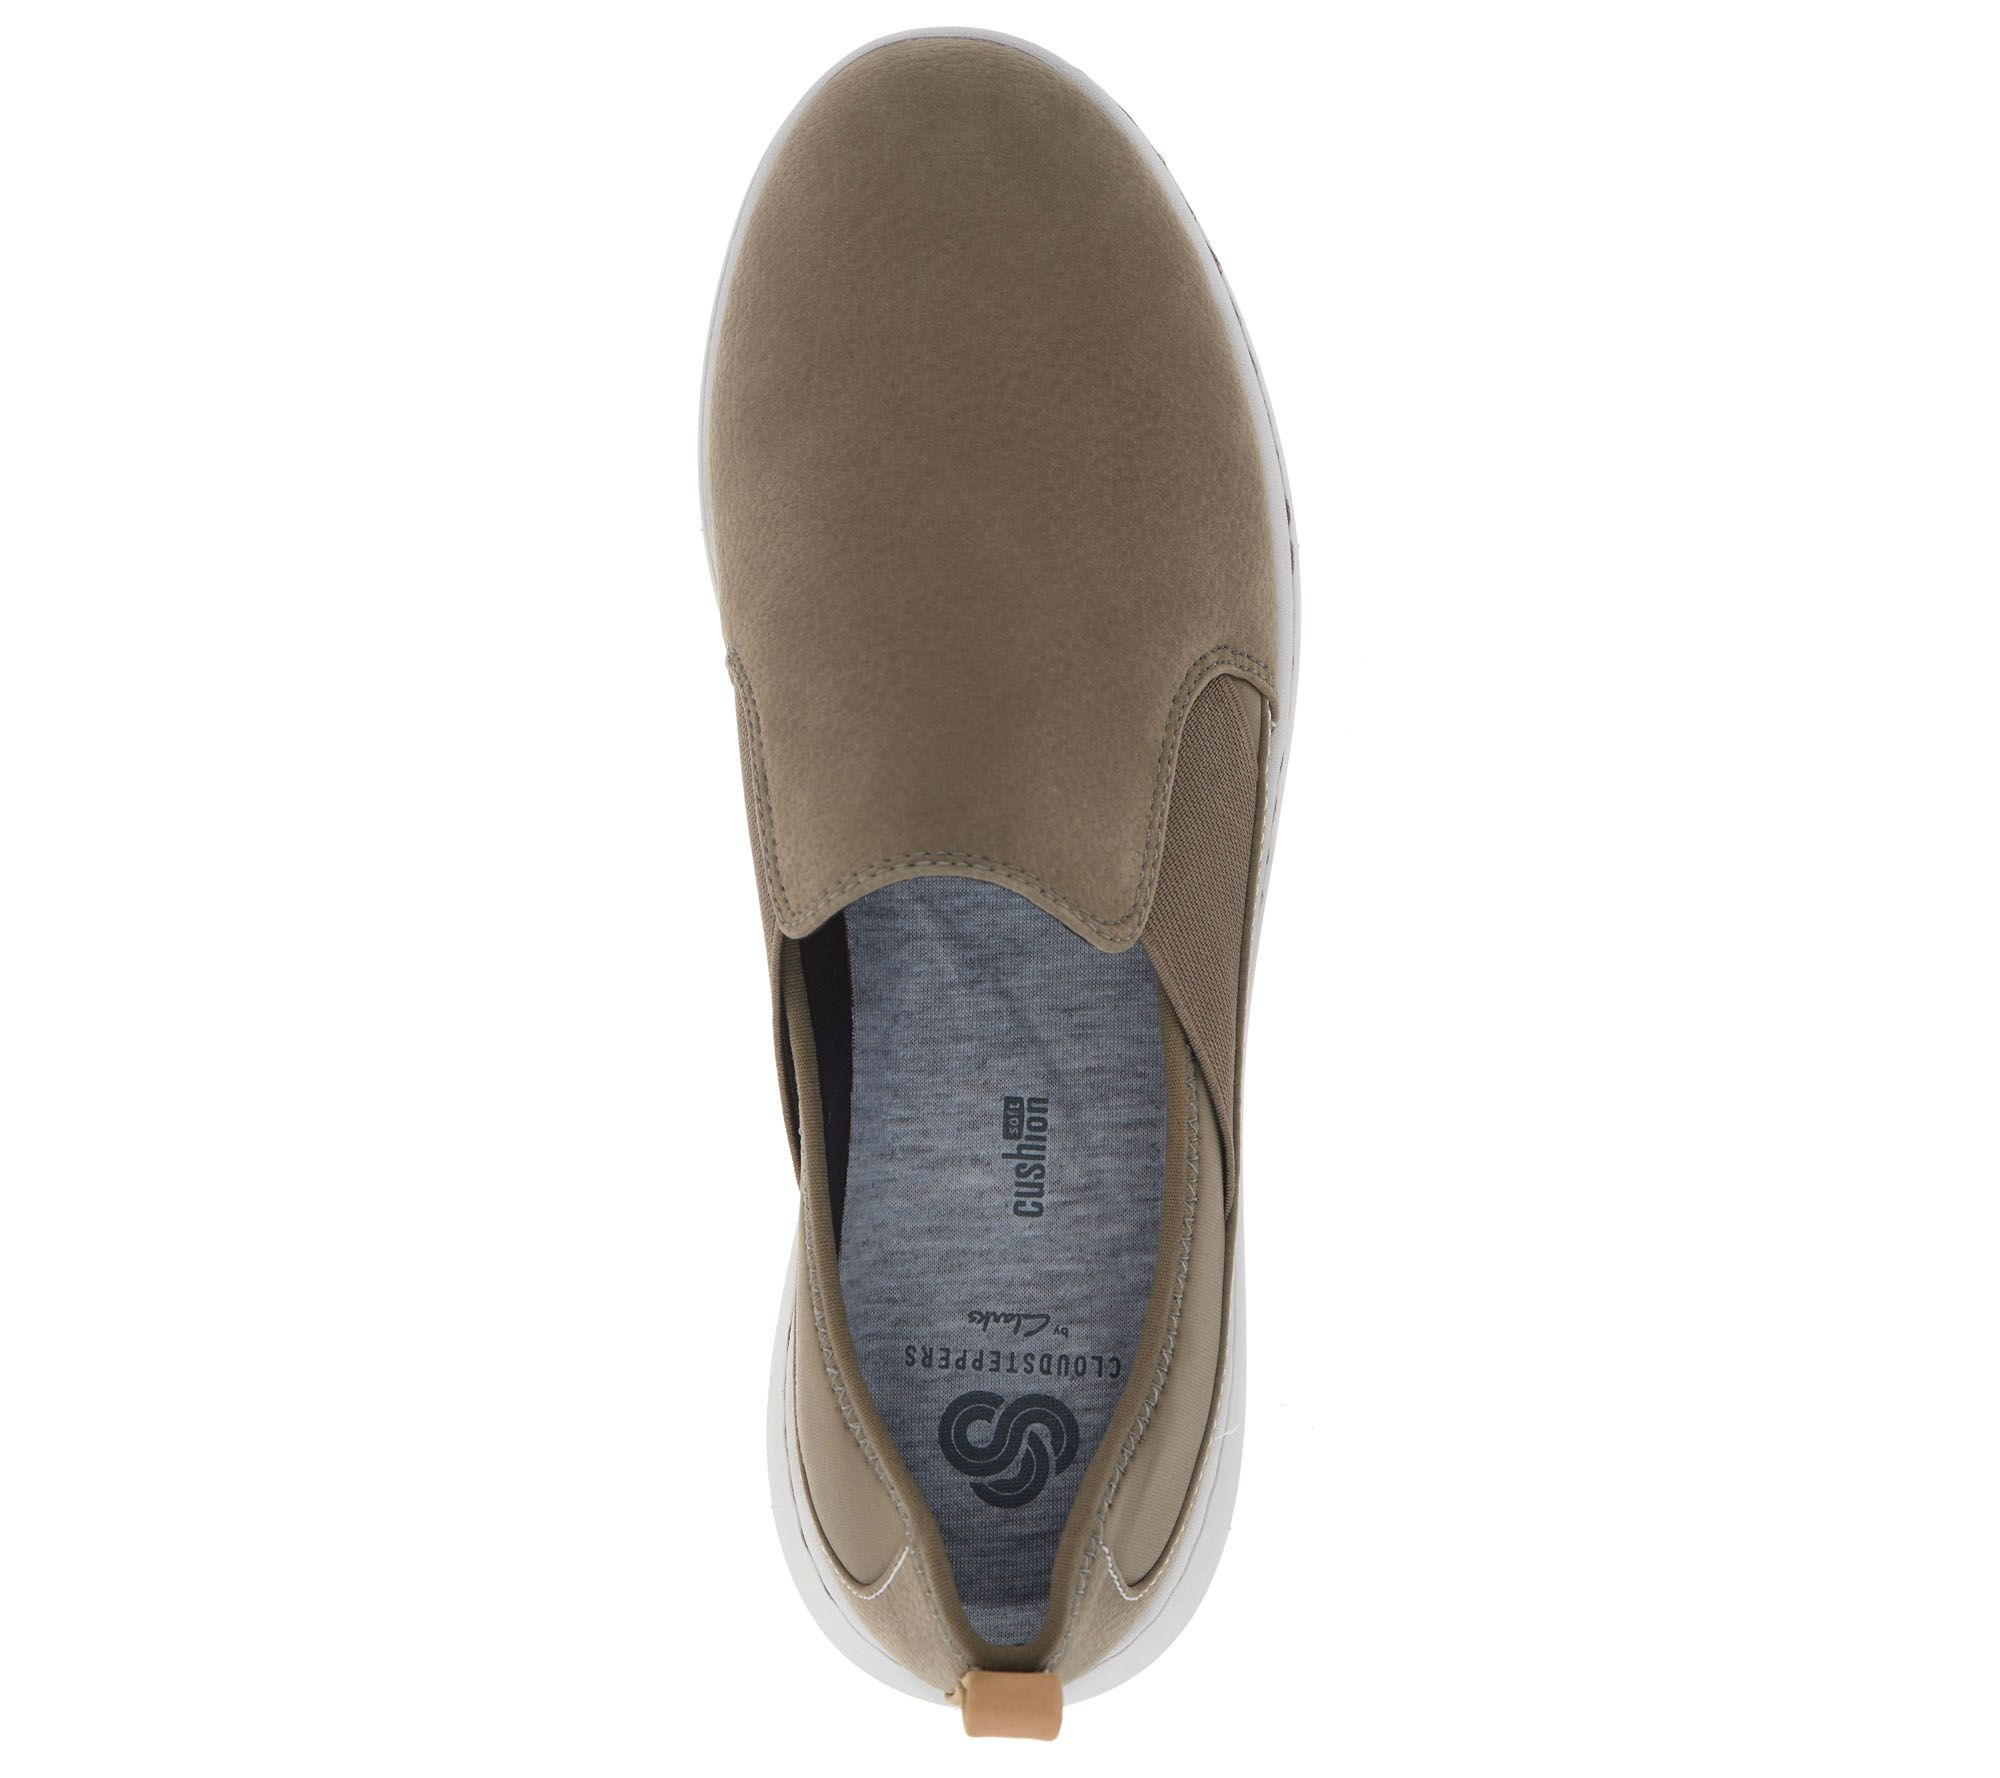 9030c600d7a CLOUDSTEPPERS by Clarks Slip-on Shoes - Step Move Jump - Page 1 — QVC.com